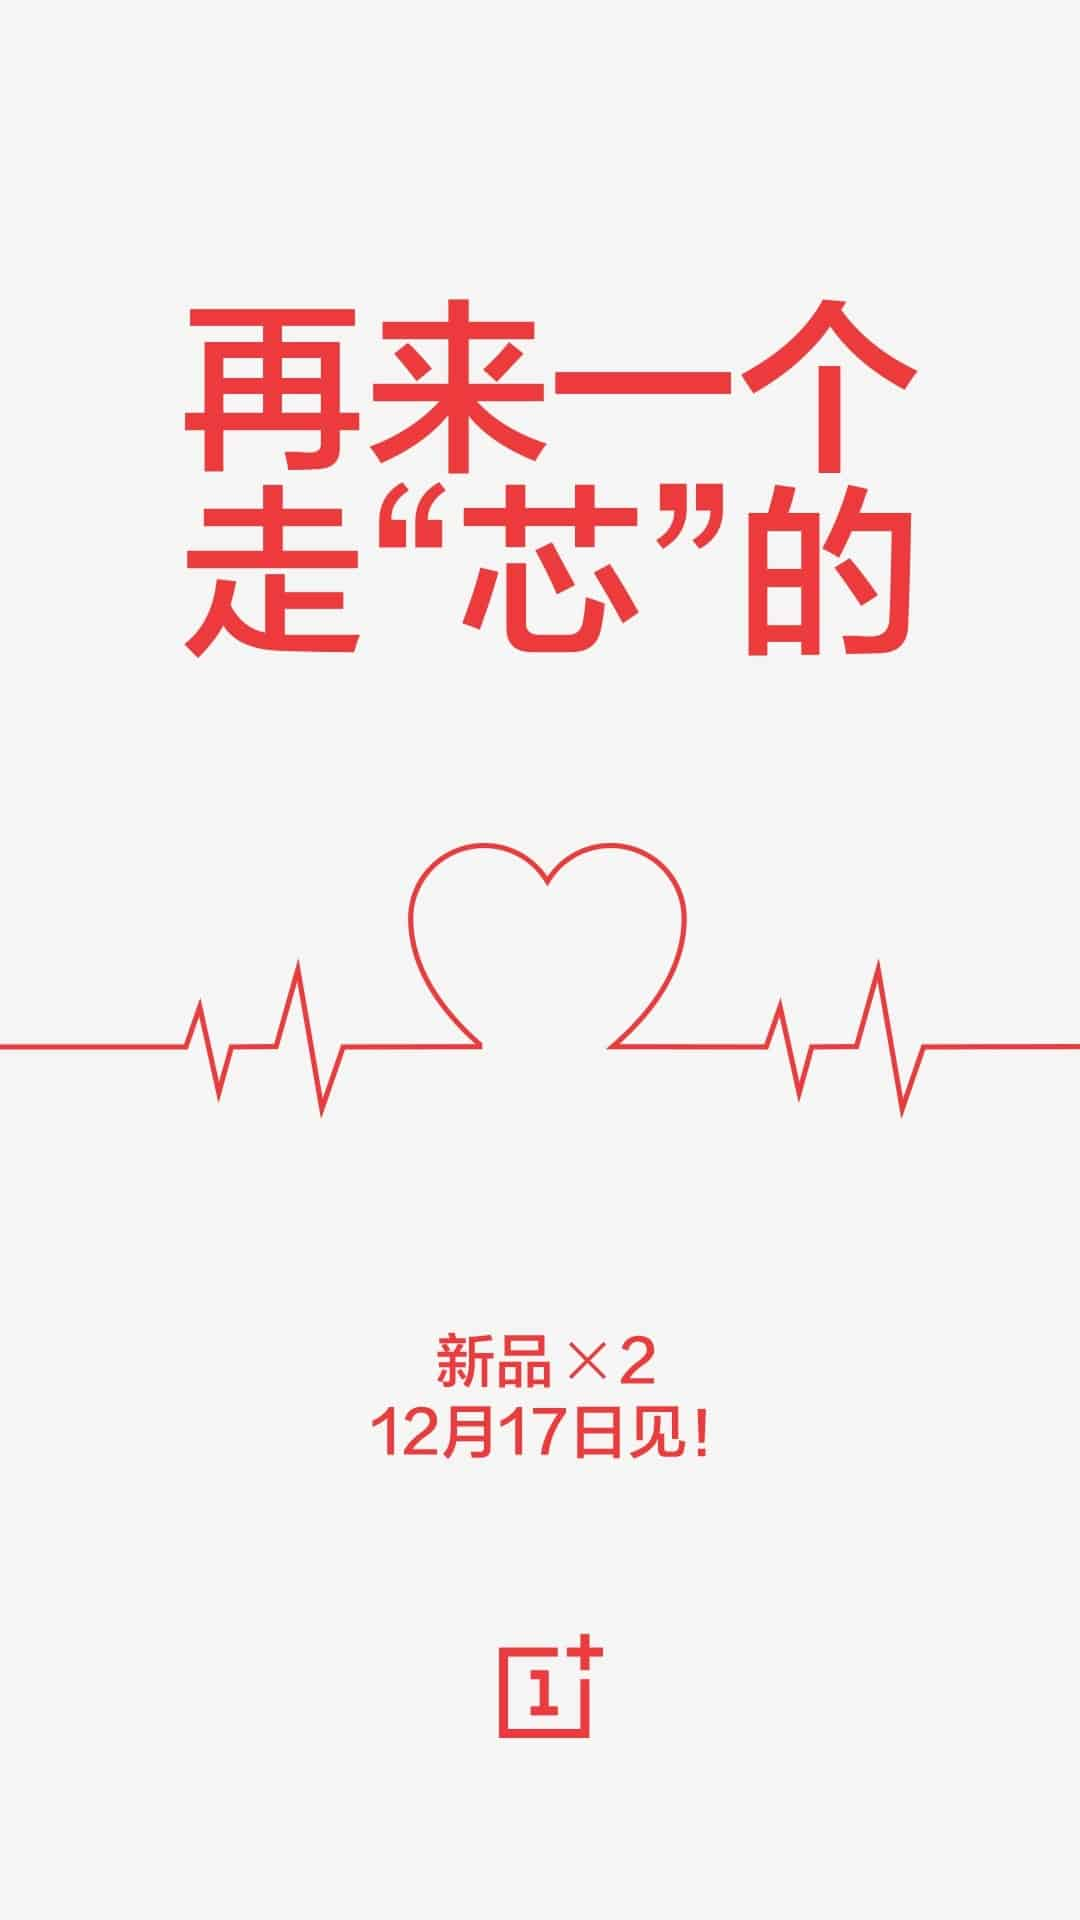 OnePlus December 17th 2014 teaser image